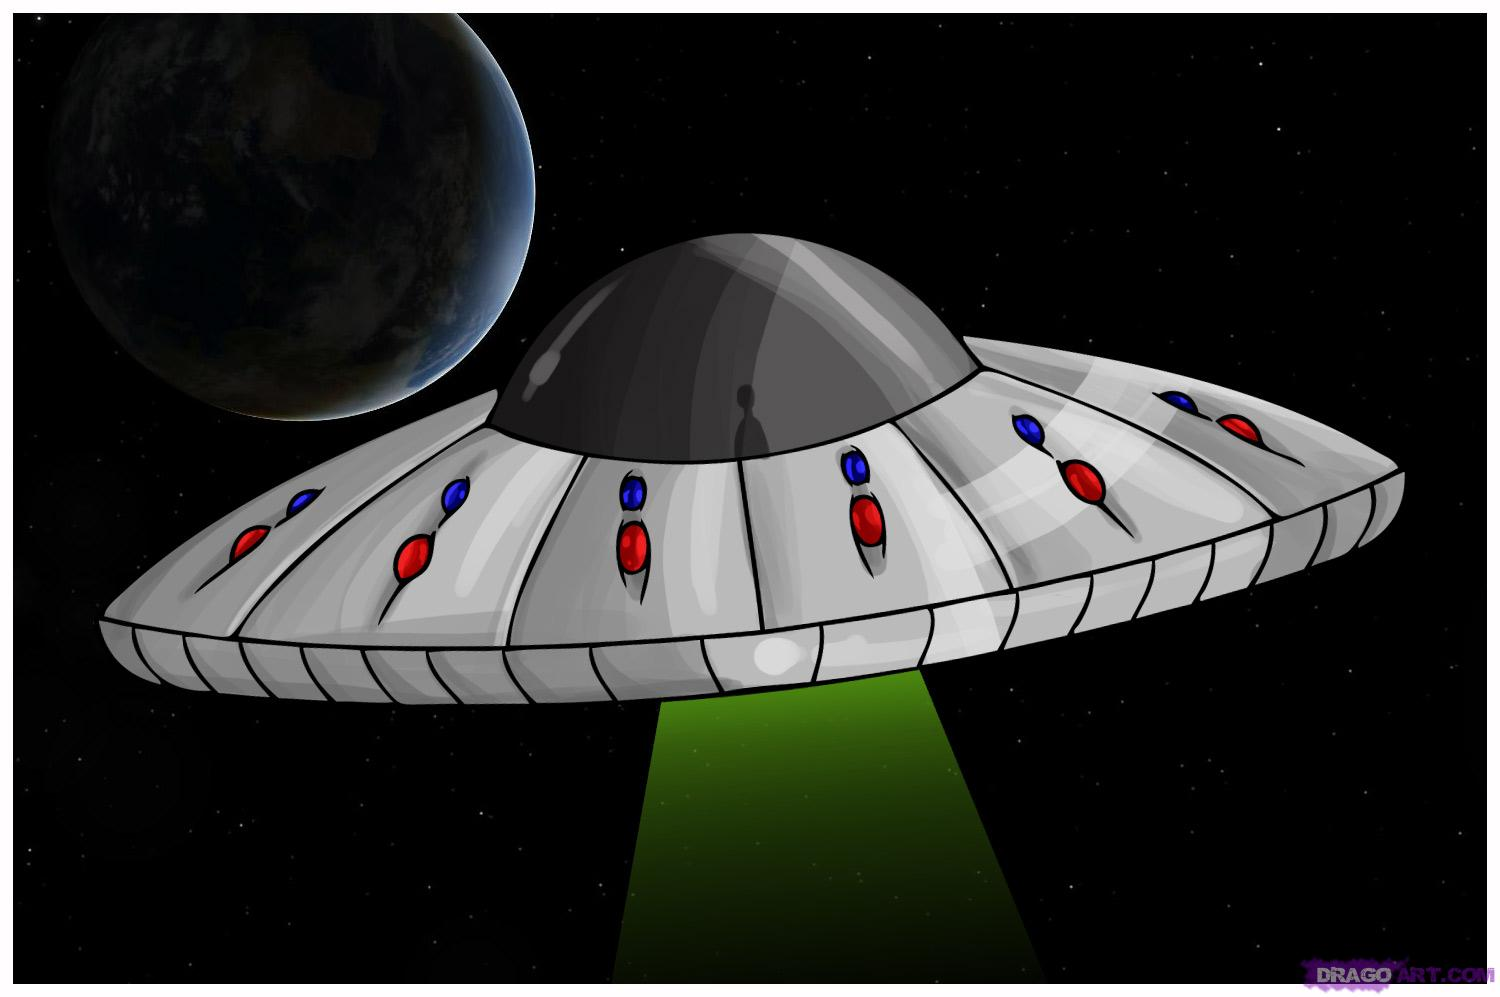 Drawn ufo Step Step UFO a how